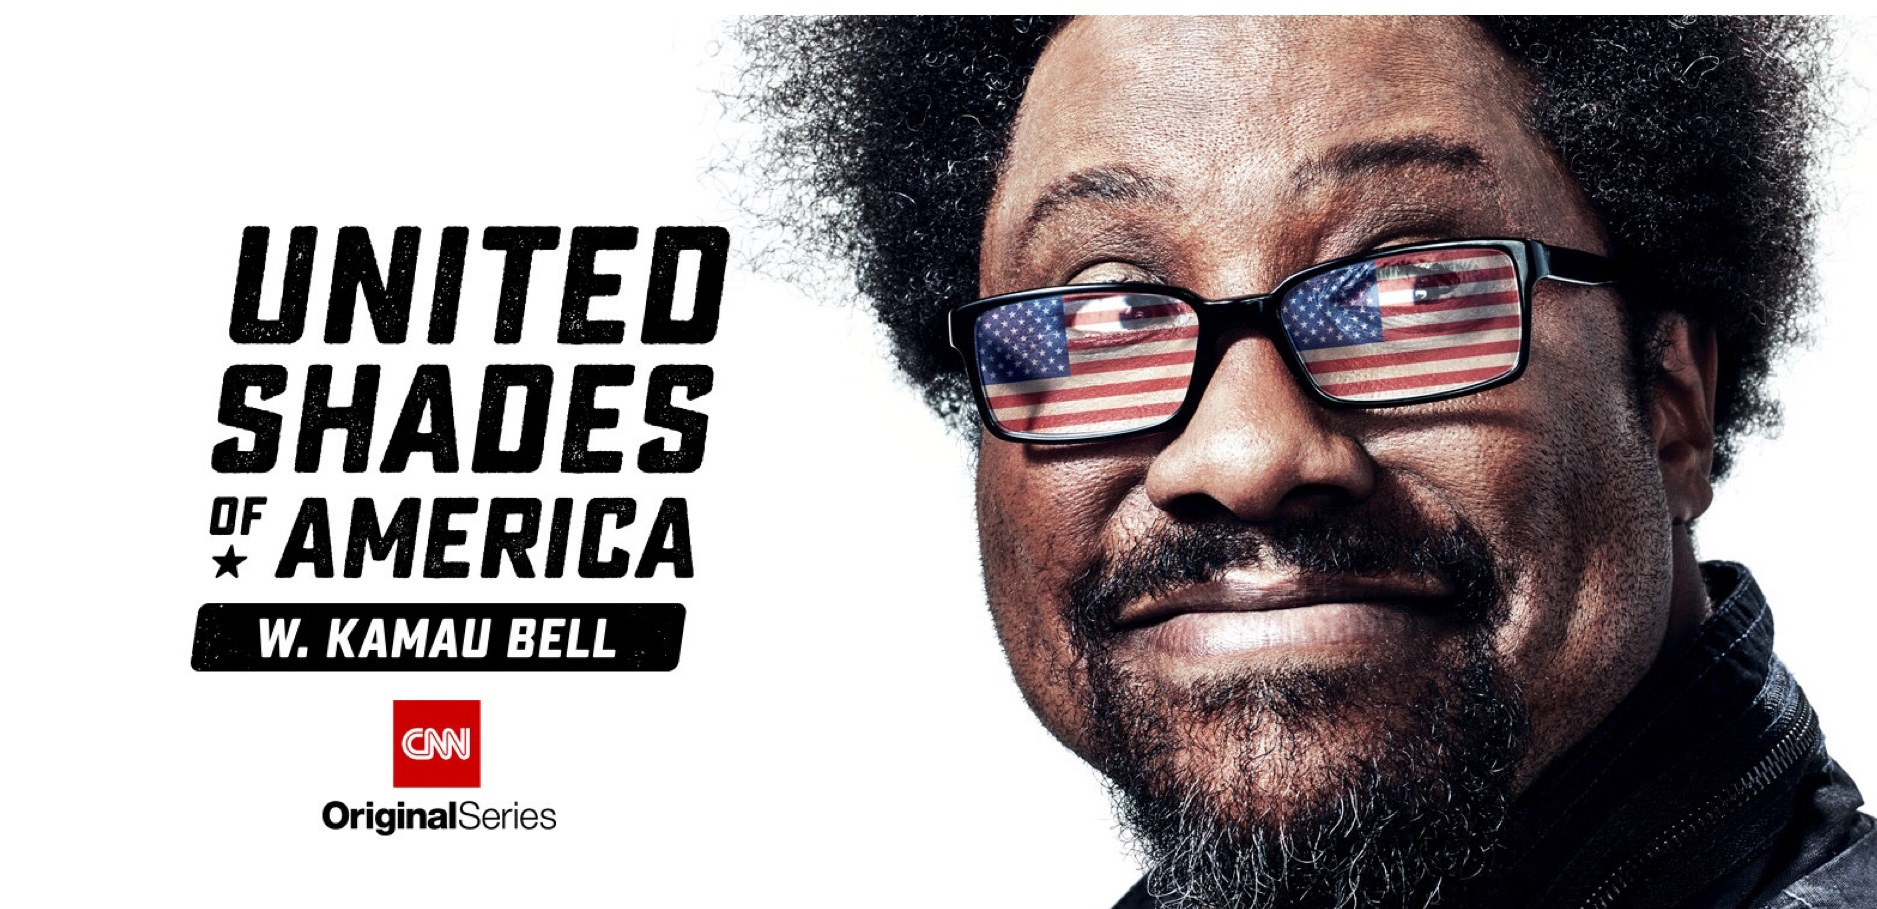 Krcl Out Proud Salt Lake With United Shades Of America S W Kamau Bell